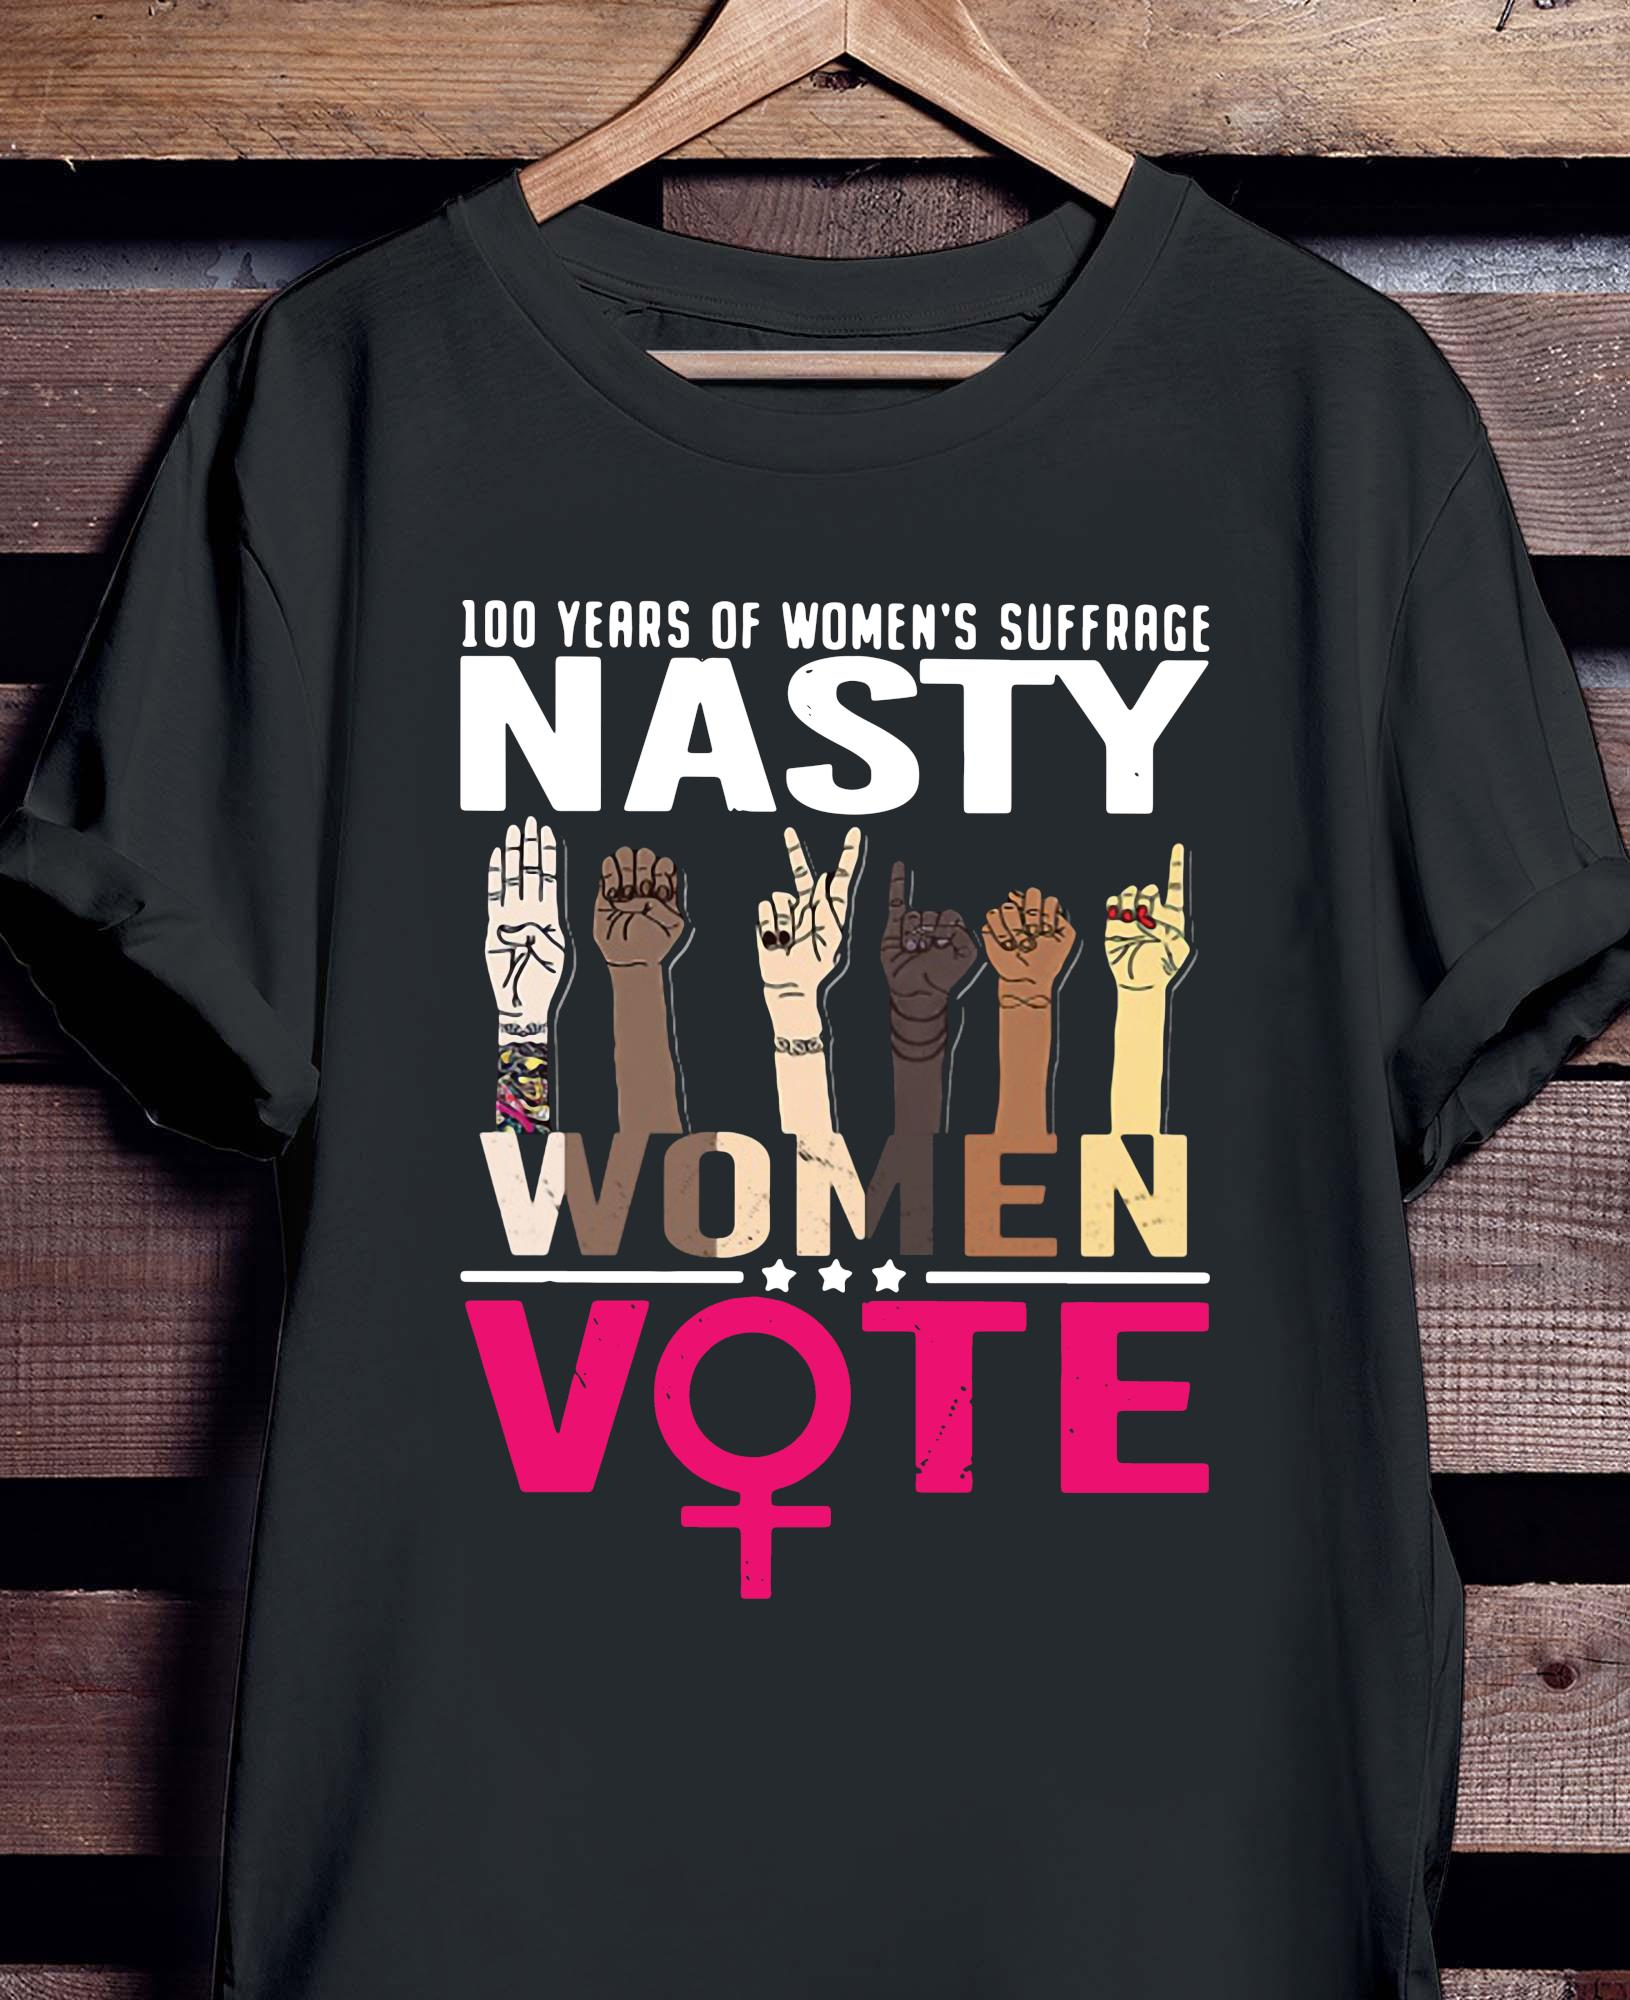 100 Years Of Women's Suffrage Nasty Women Vote Shirt